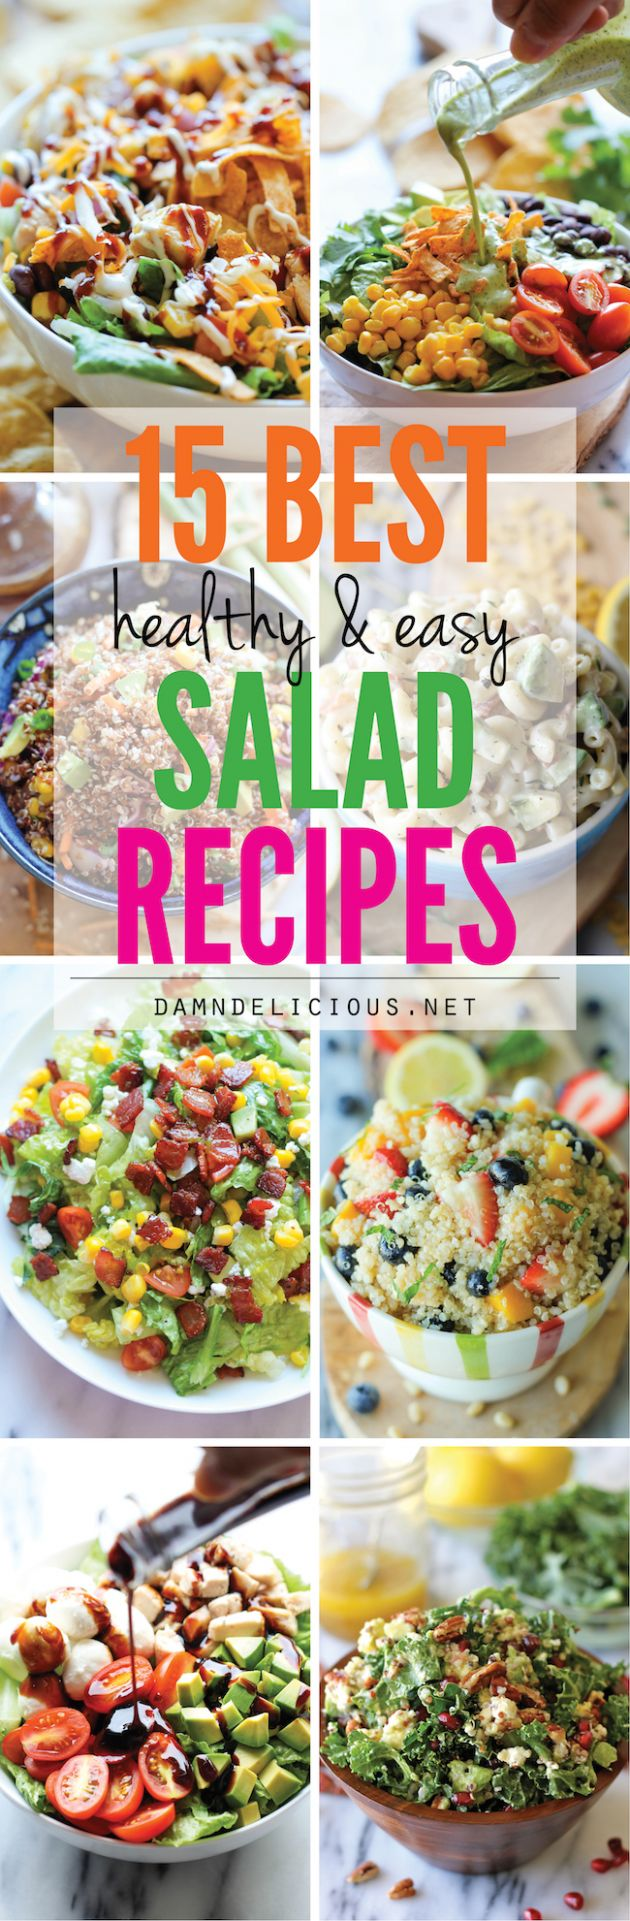 9 Best Healthy and Easy Salad Recipes - Damn Delicious